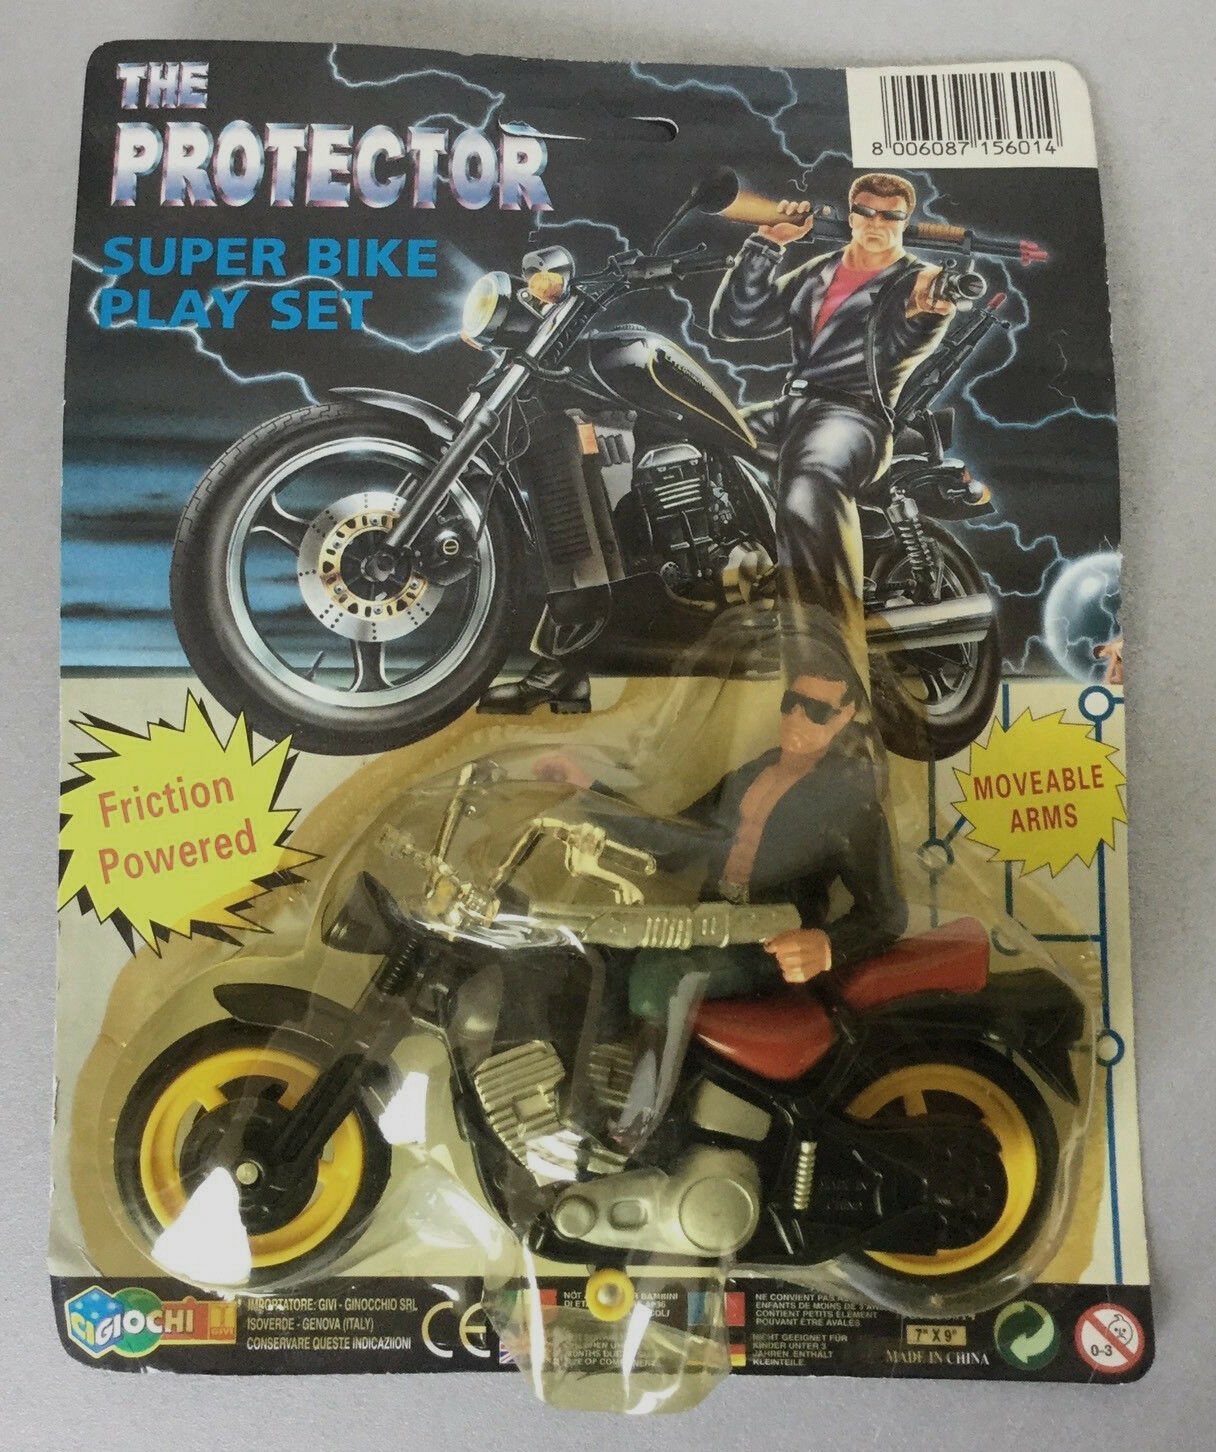 VINTAGE TERMINATOR THE PROTECTOR BIKE SET FROM 90s FIGURE (VERY RARE) NOT KENNER